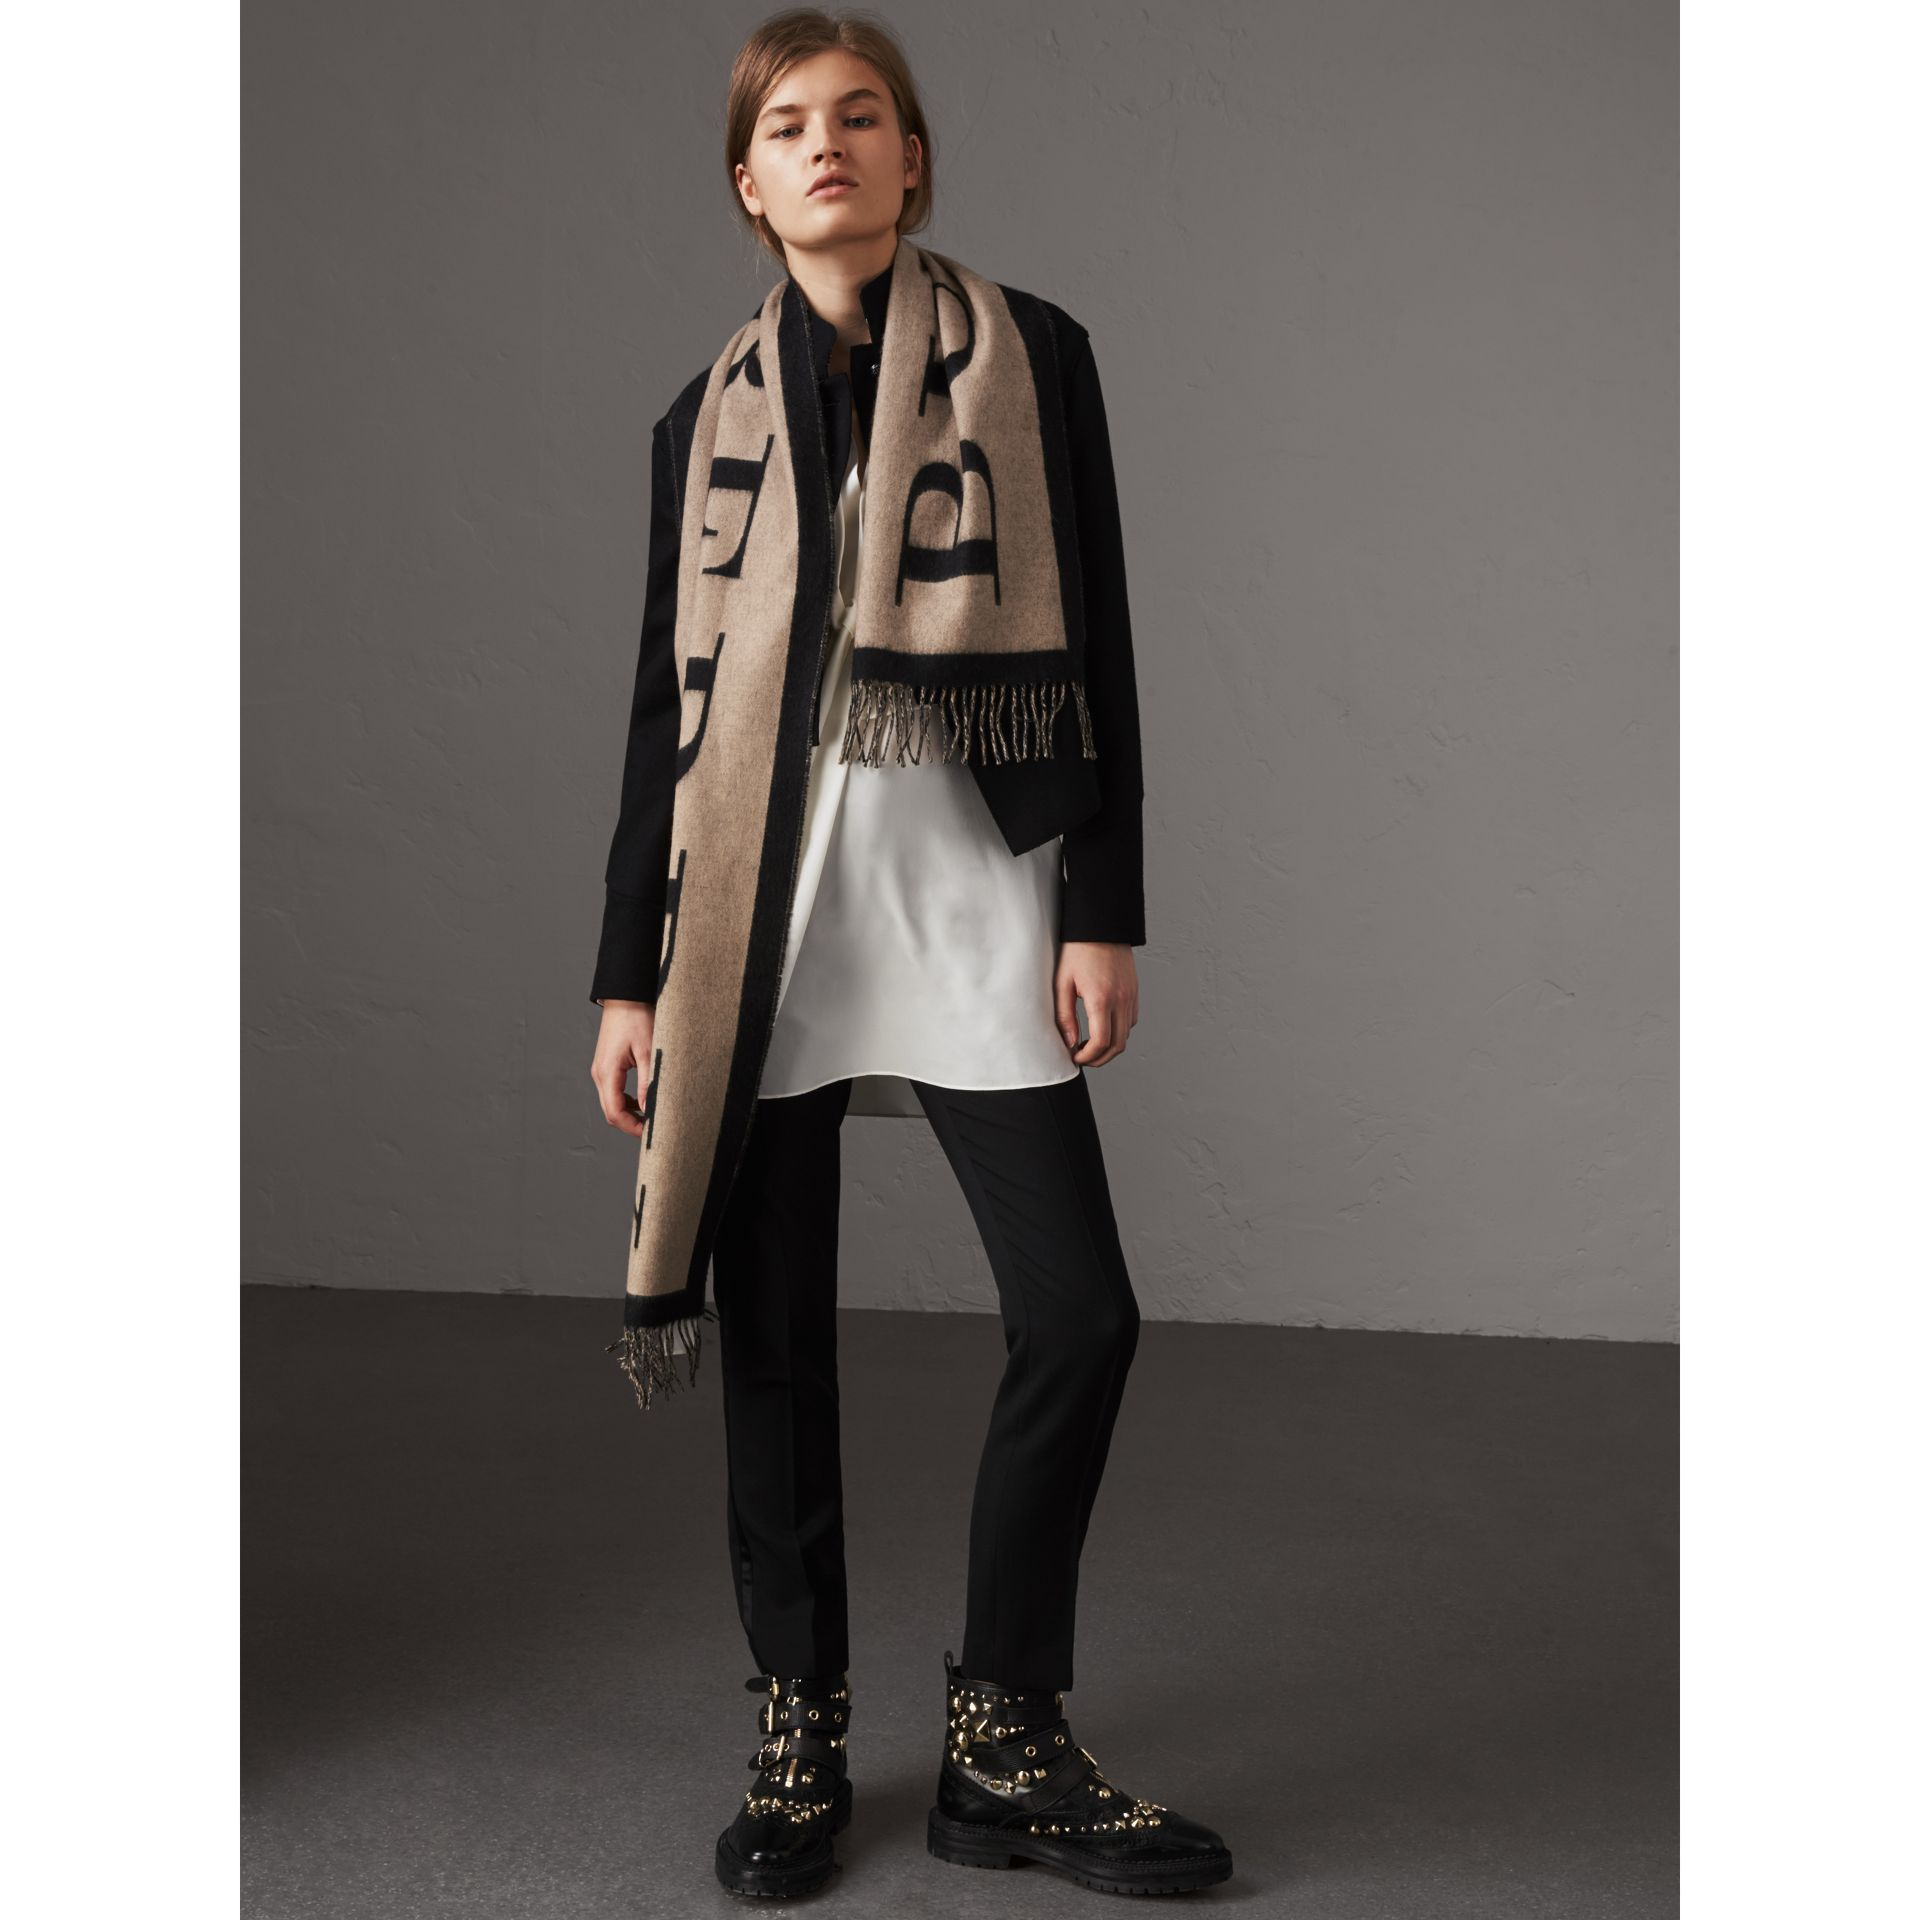 Graphic Print Motif  Lightweight Cashmere Scarf in Camel - Women | Burberry United States - gallery image 3